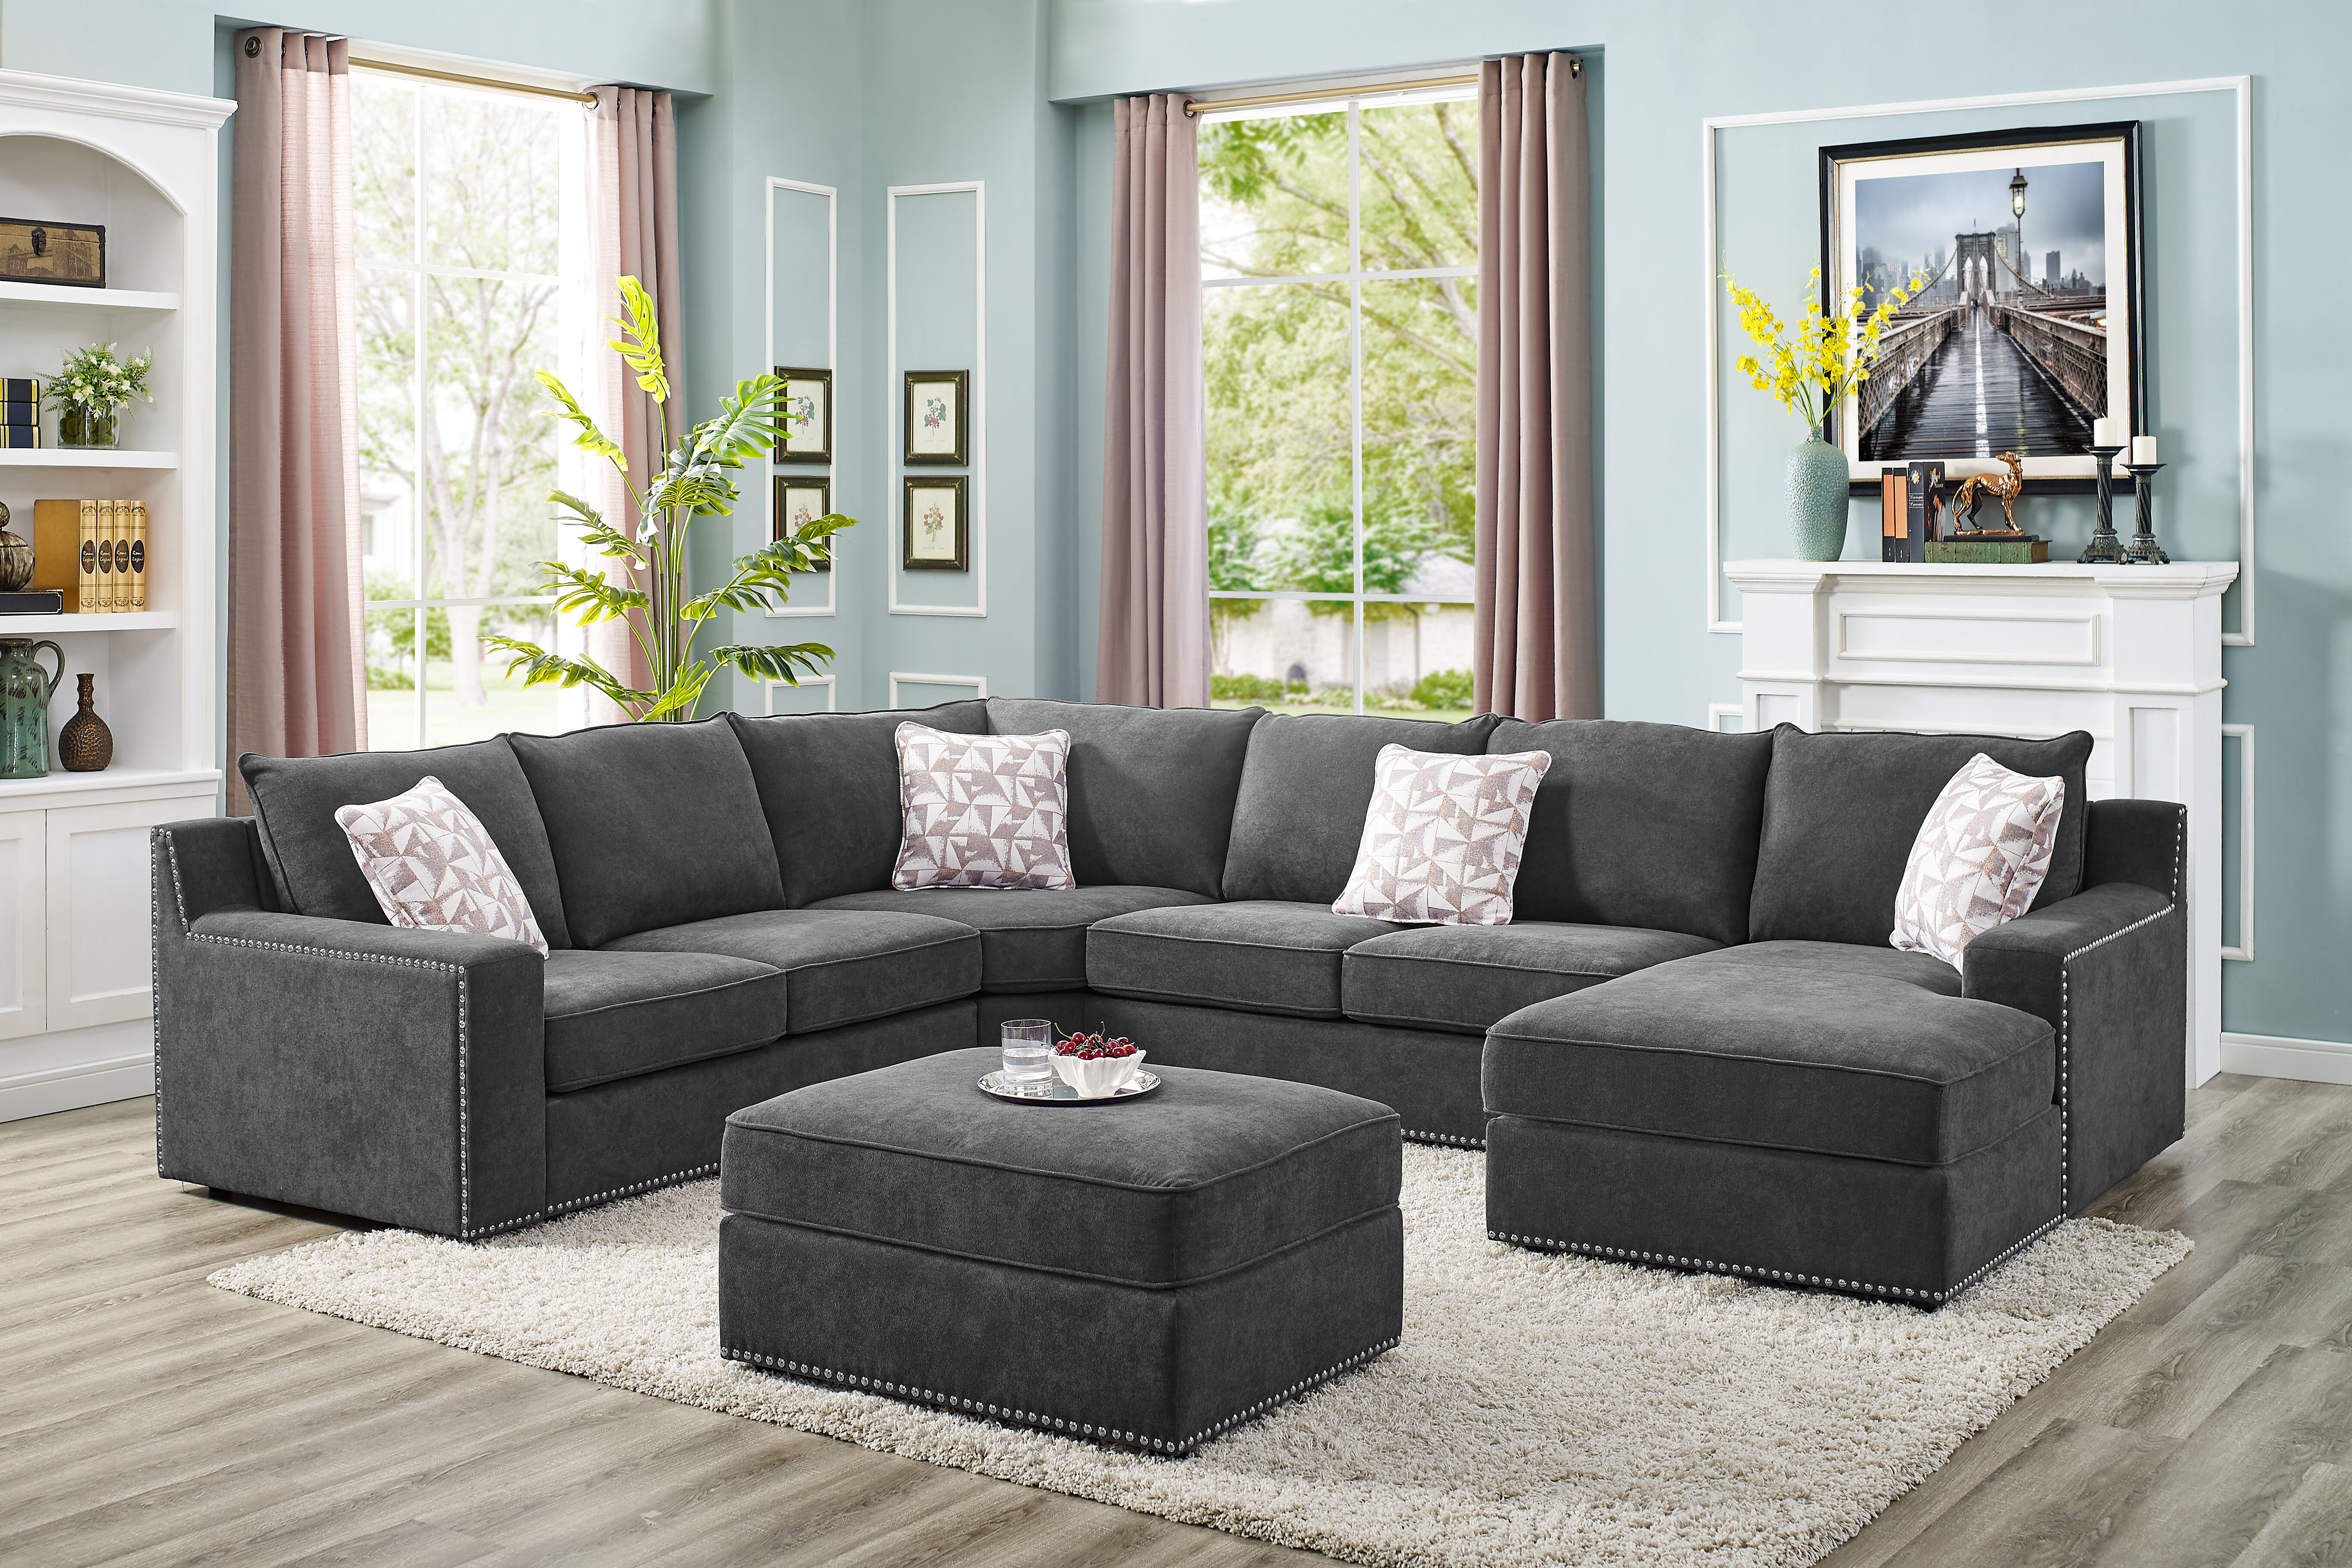 Makah 5 Seater Right Hand Facing Sectional Sofa With Ottoman